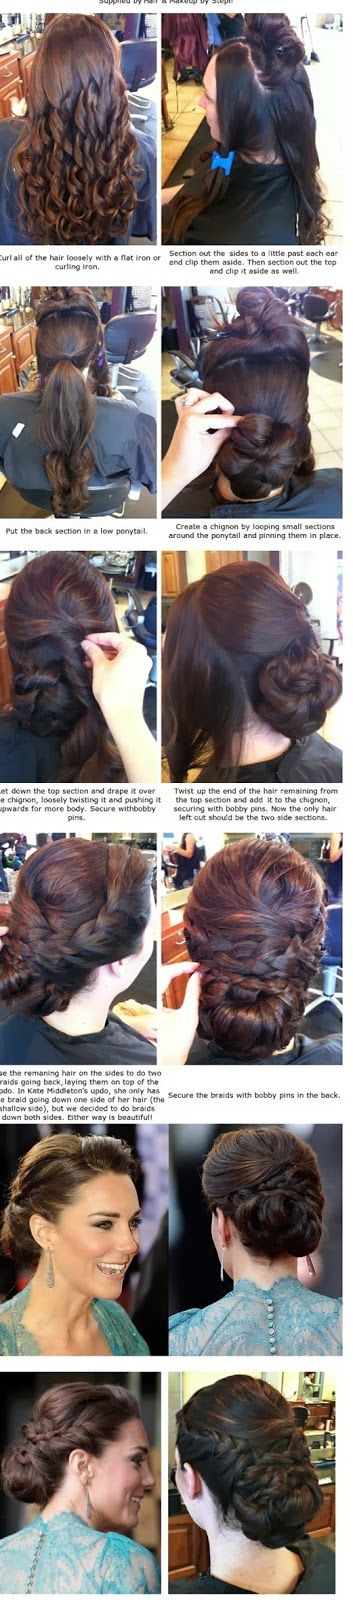 Kate Middleton Updo Hairstyle For Long Hair | Hair |Haircuts |Color